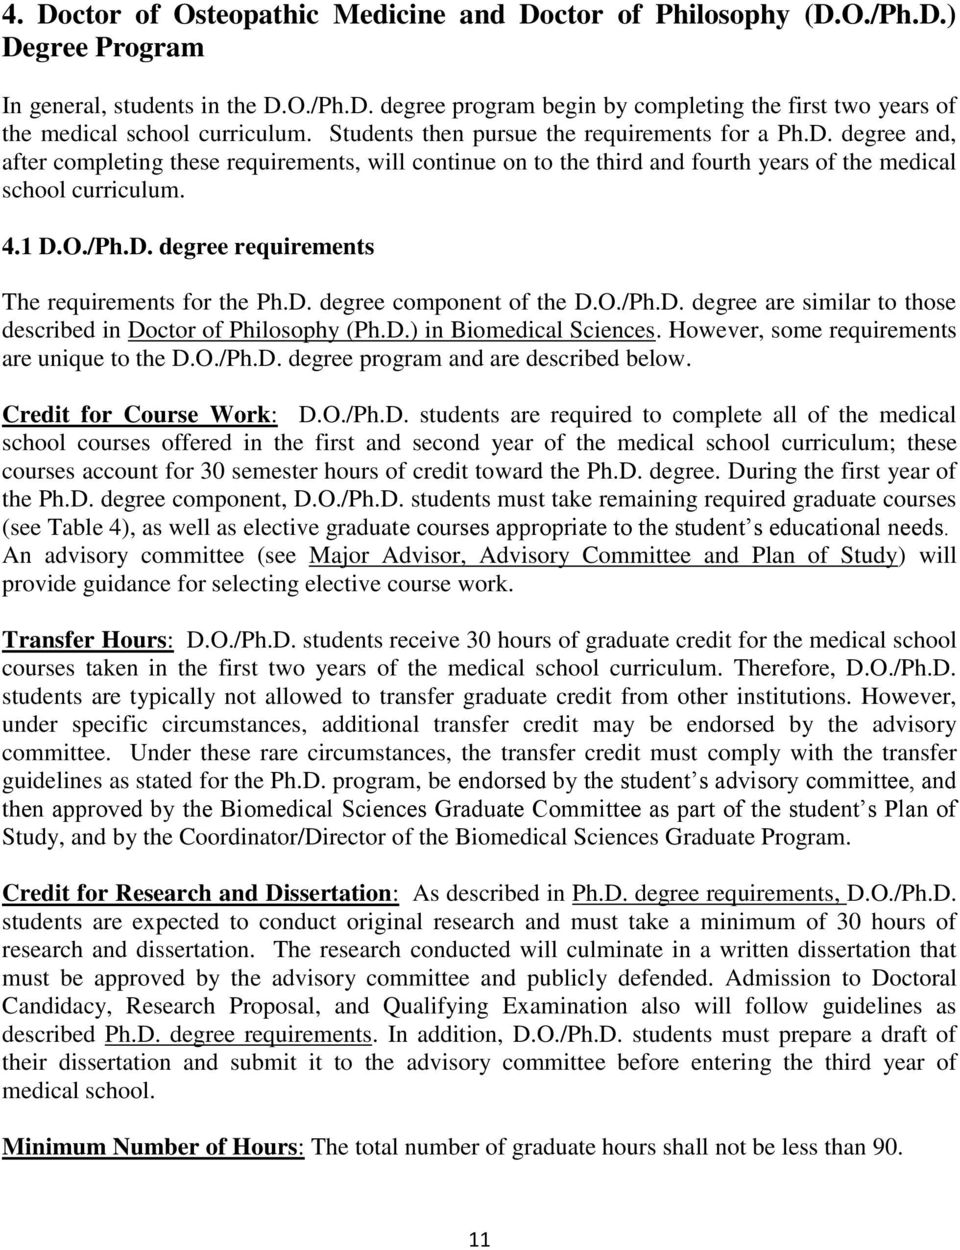 D. degree component of the D.O./Ph.D. degree are similar to those described in Doctor of Philosophy (Ph.D.) in Biomedical Sciences. However, some requirements are unique to the D.O./Ph.D. degree program and are described below.